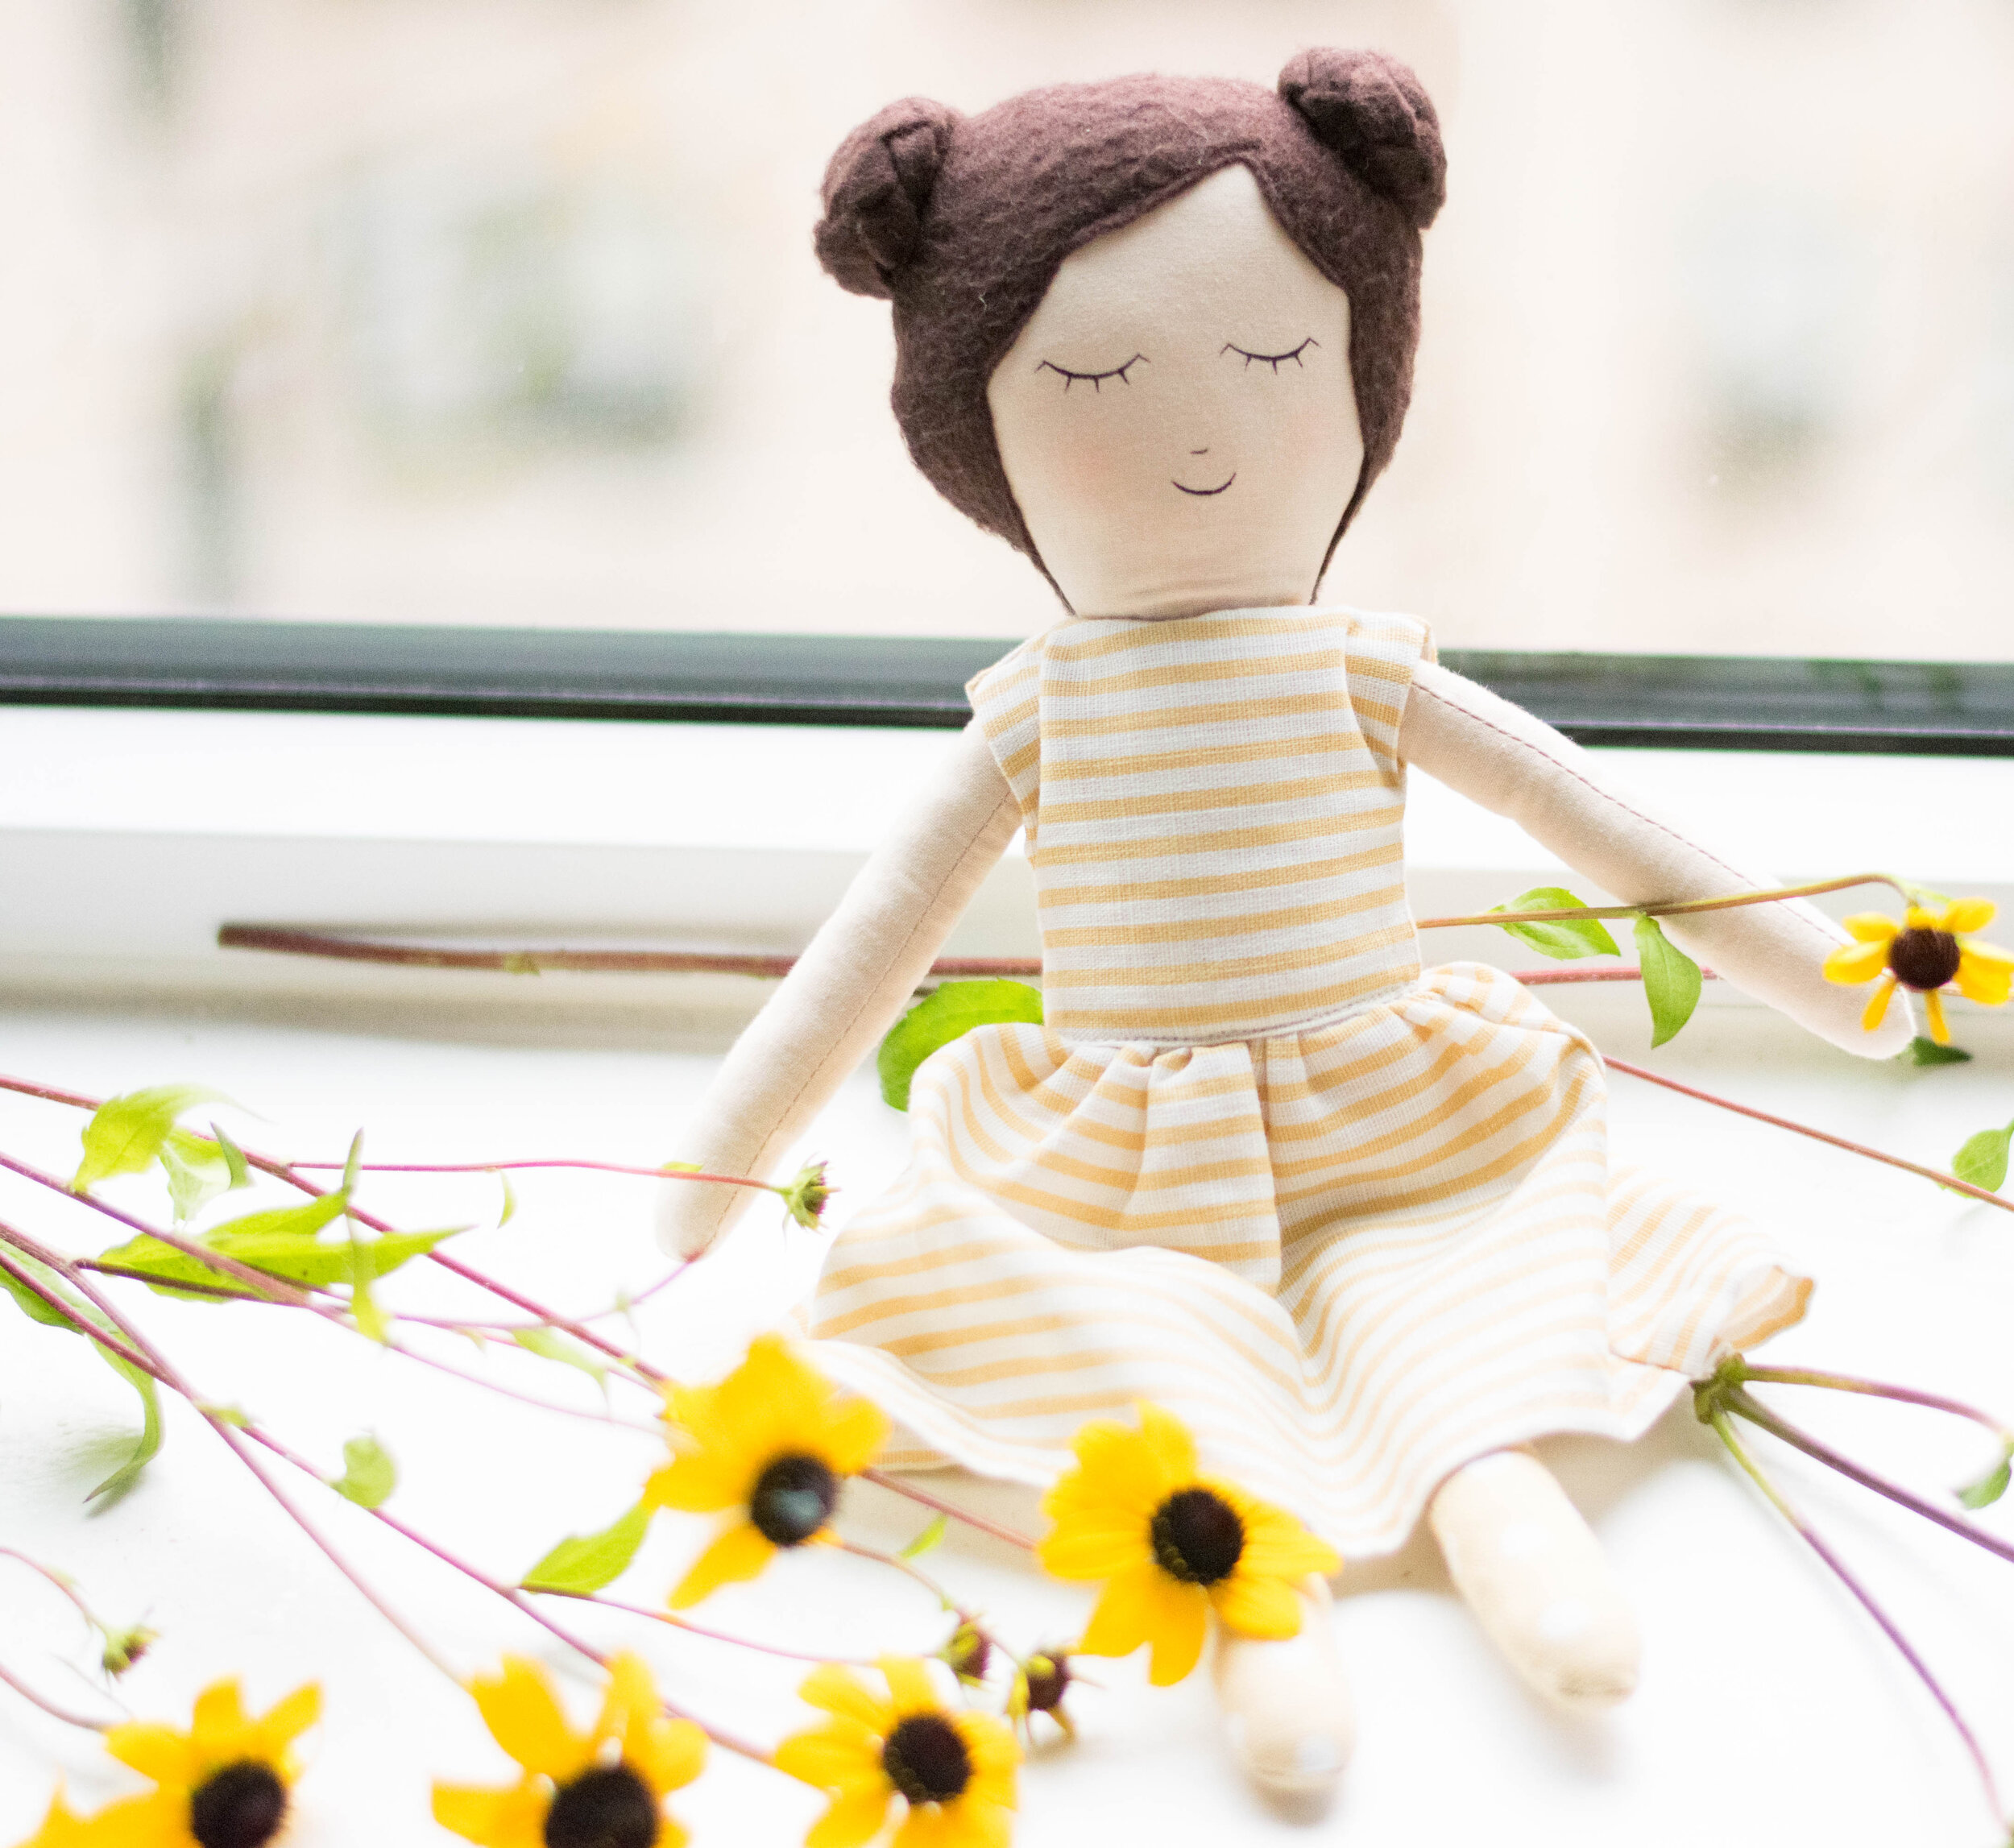 ethically made dolls